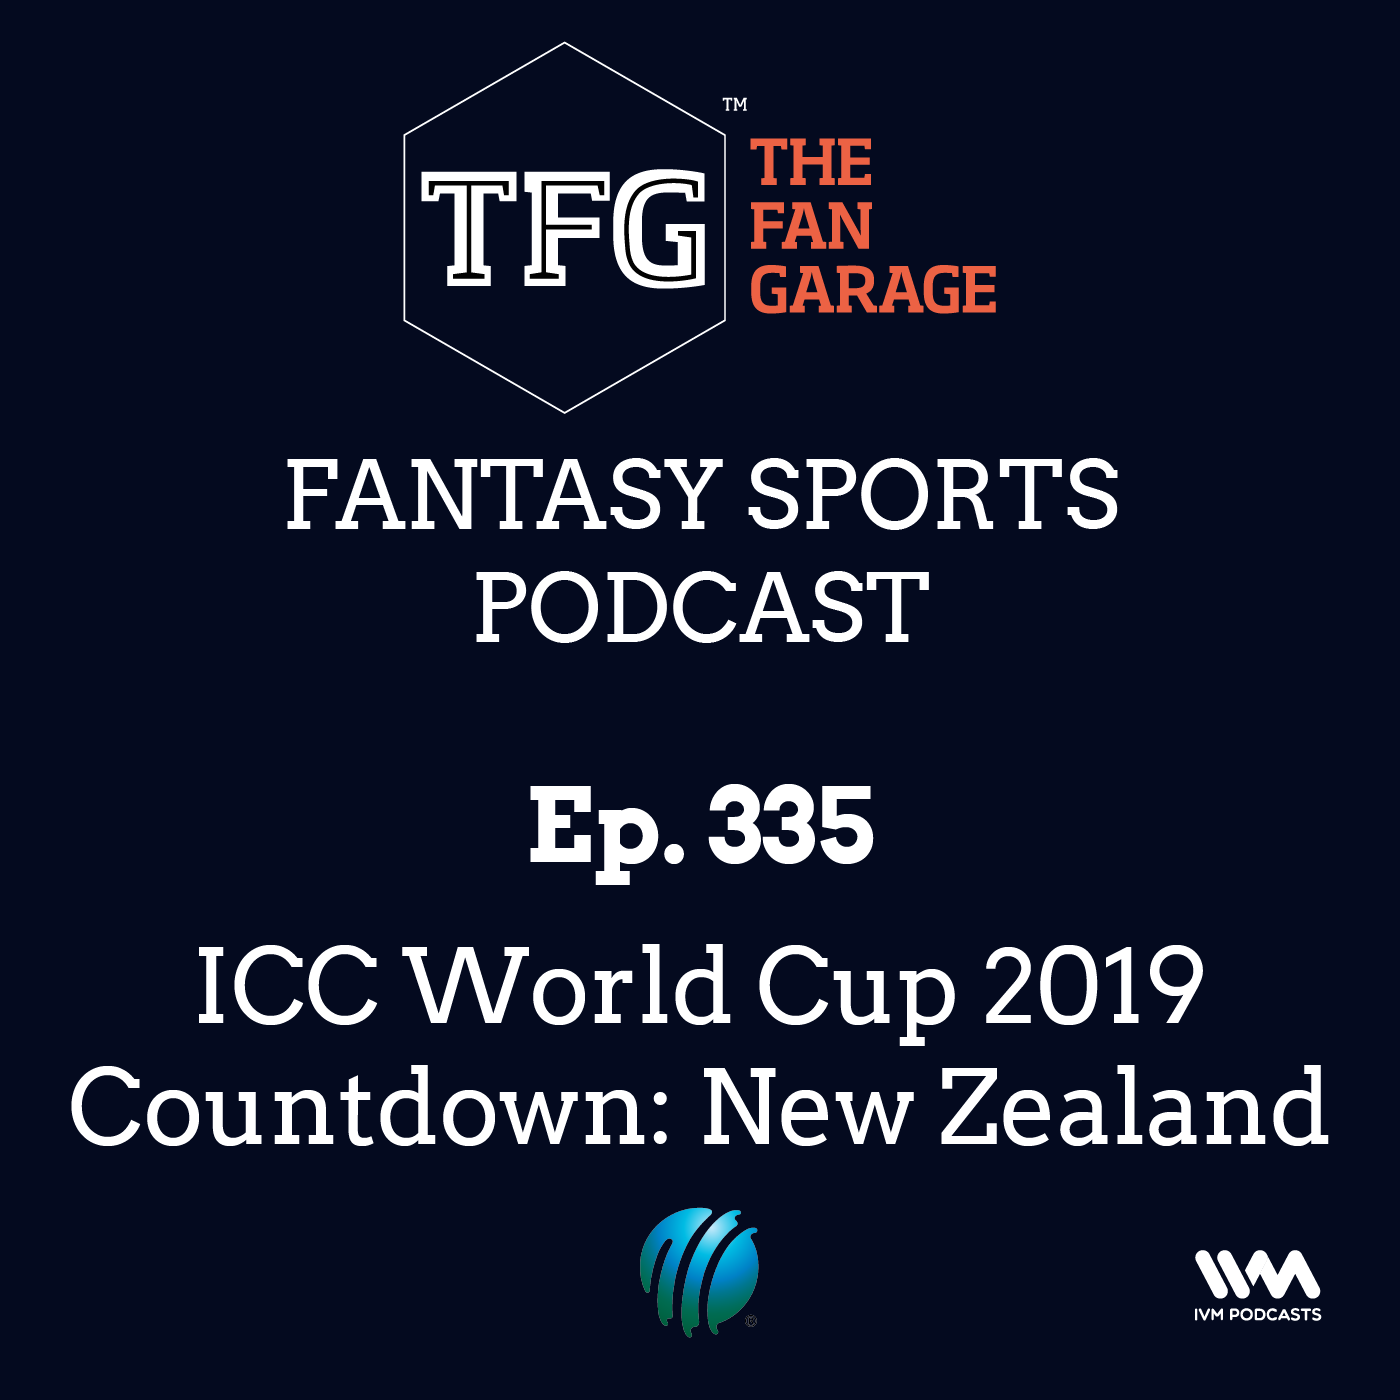 TFG Fantasy Sports Podcast Ep. 335: ICC World Cup 2019 Countdown: New Zealand